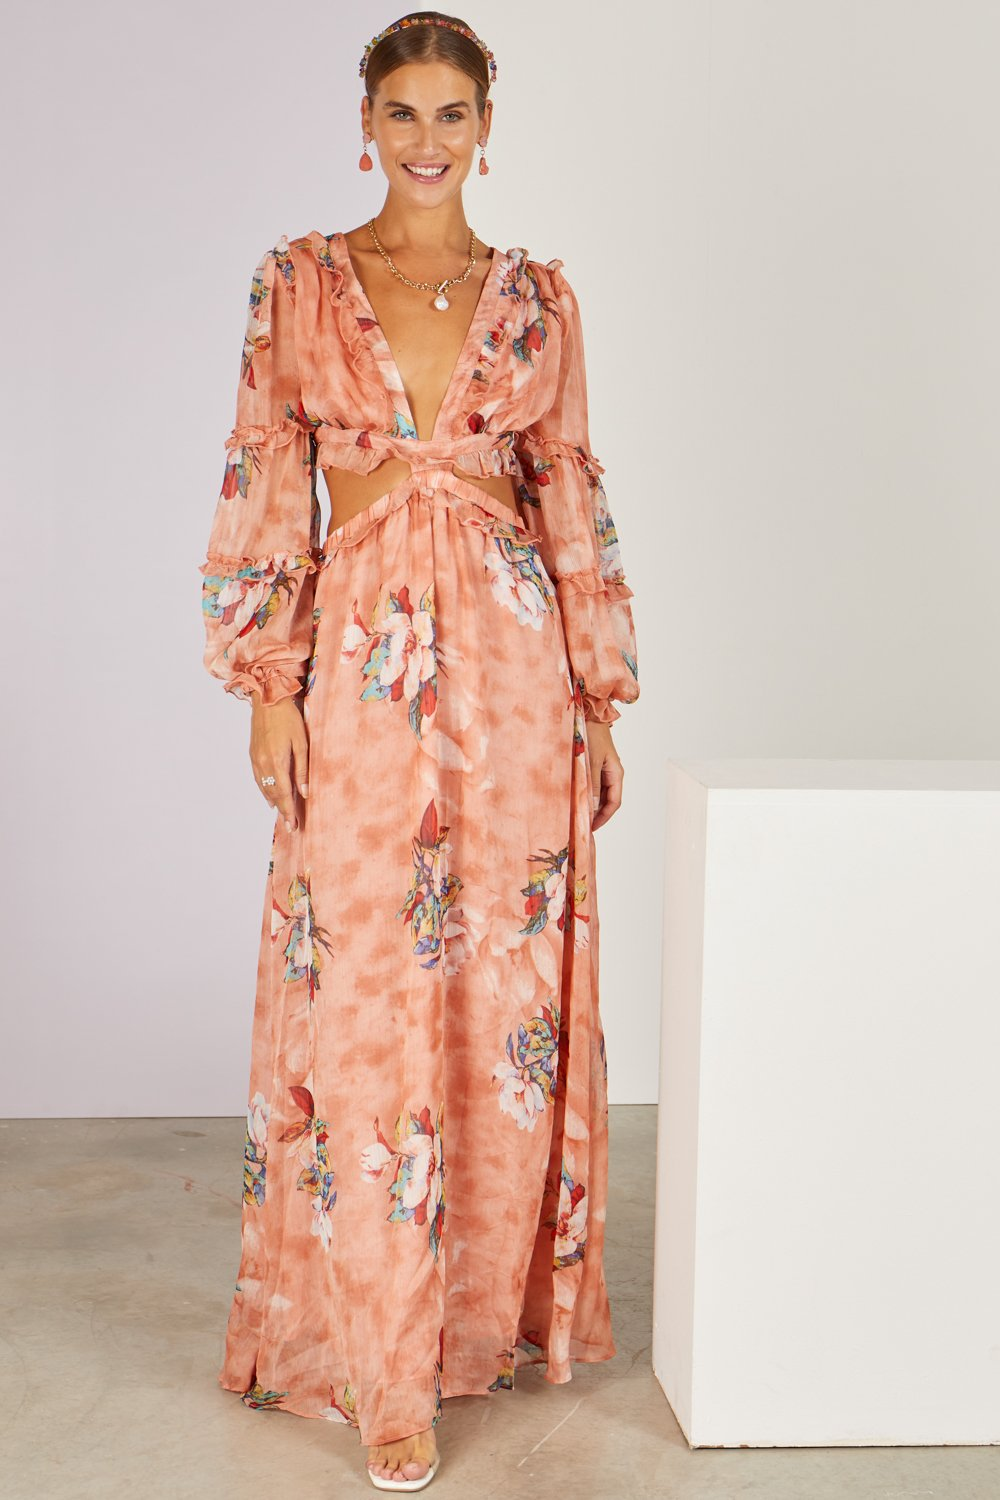 Mamacita Faded Floral Cut-out Maxi Dress Blush